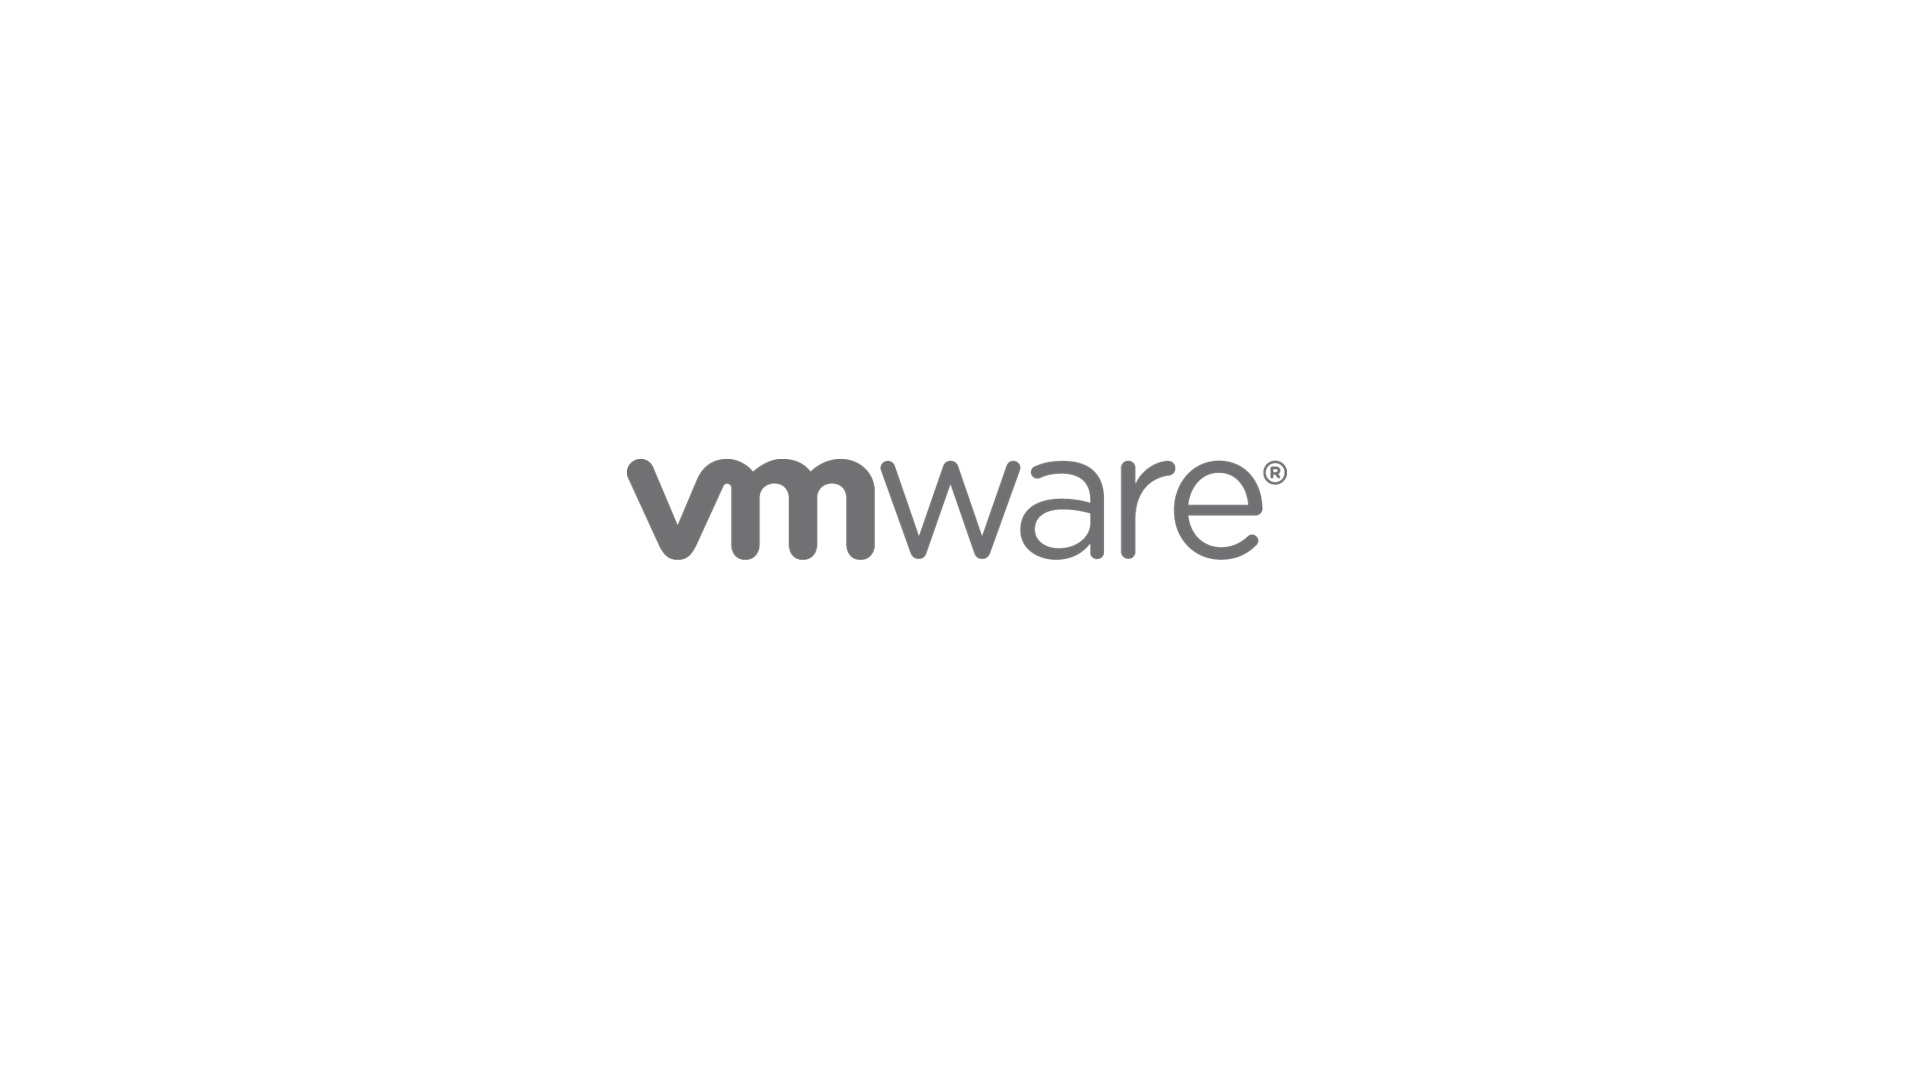 vmware_logo_wallpaper_white